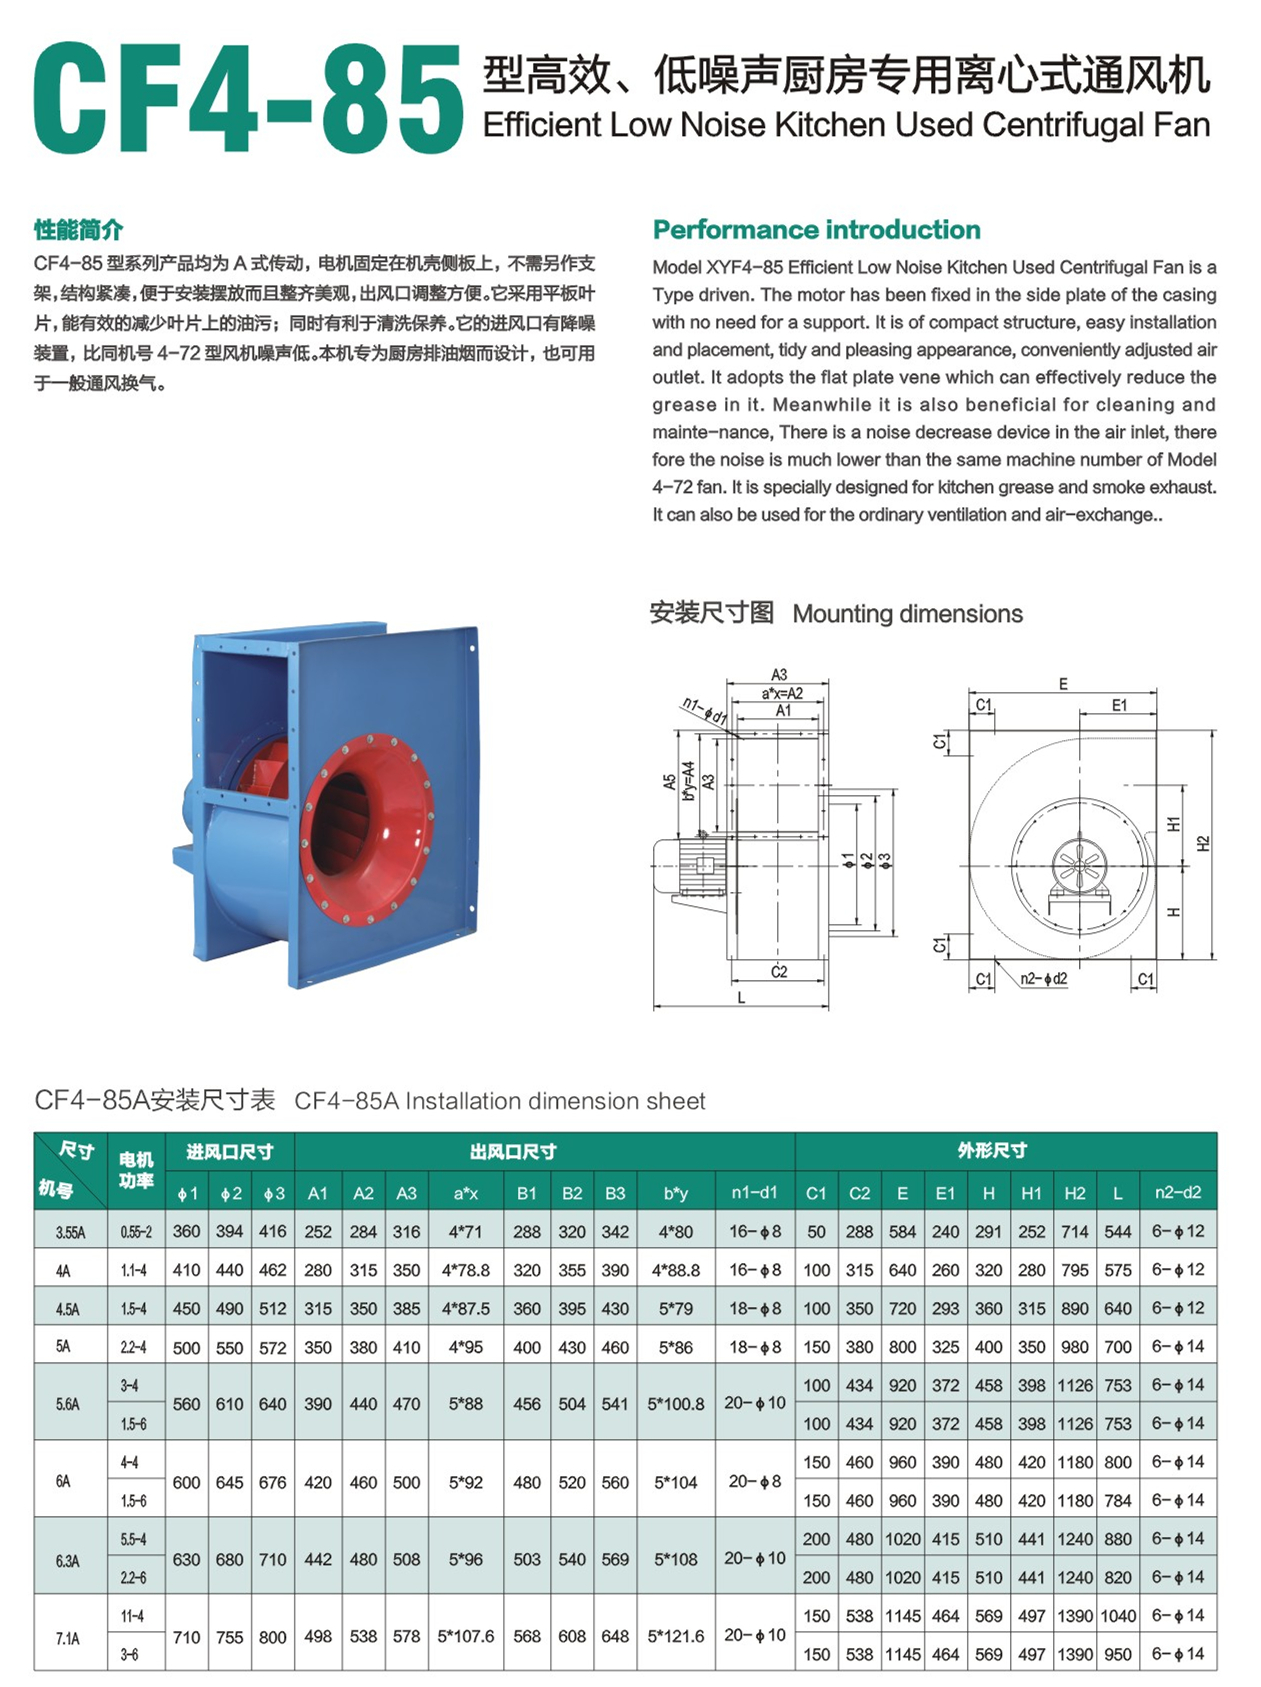 CF4-85 EFFICIENT LOW NOISE KICHEN USED CENTRIFUGAL FAN